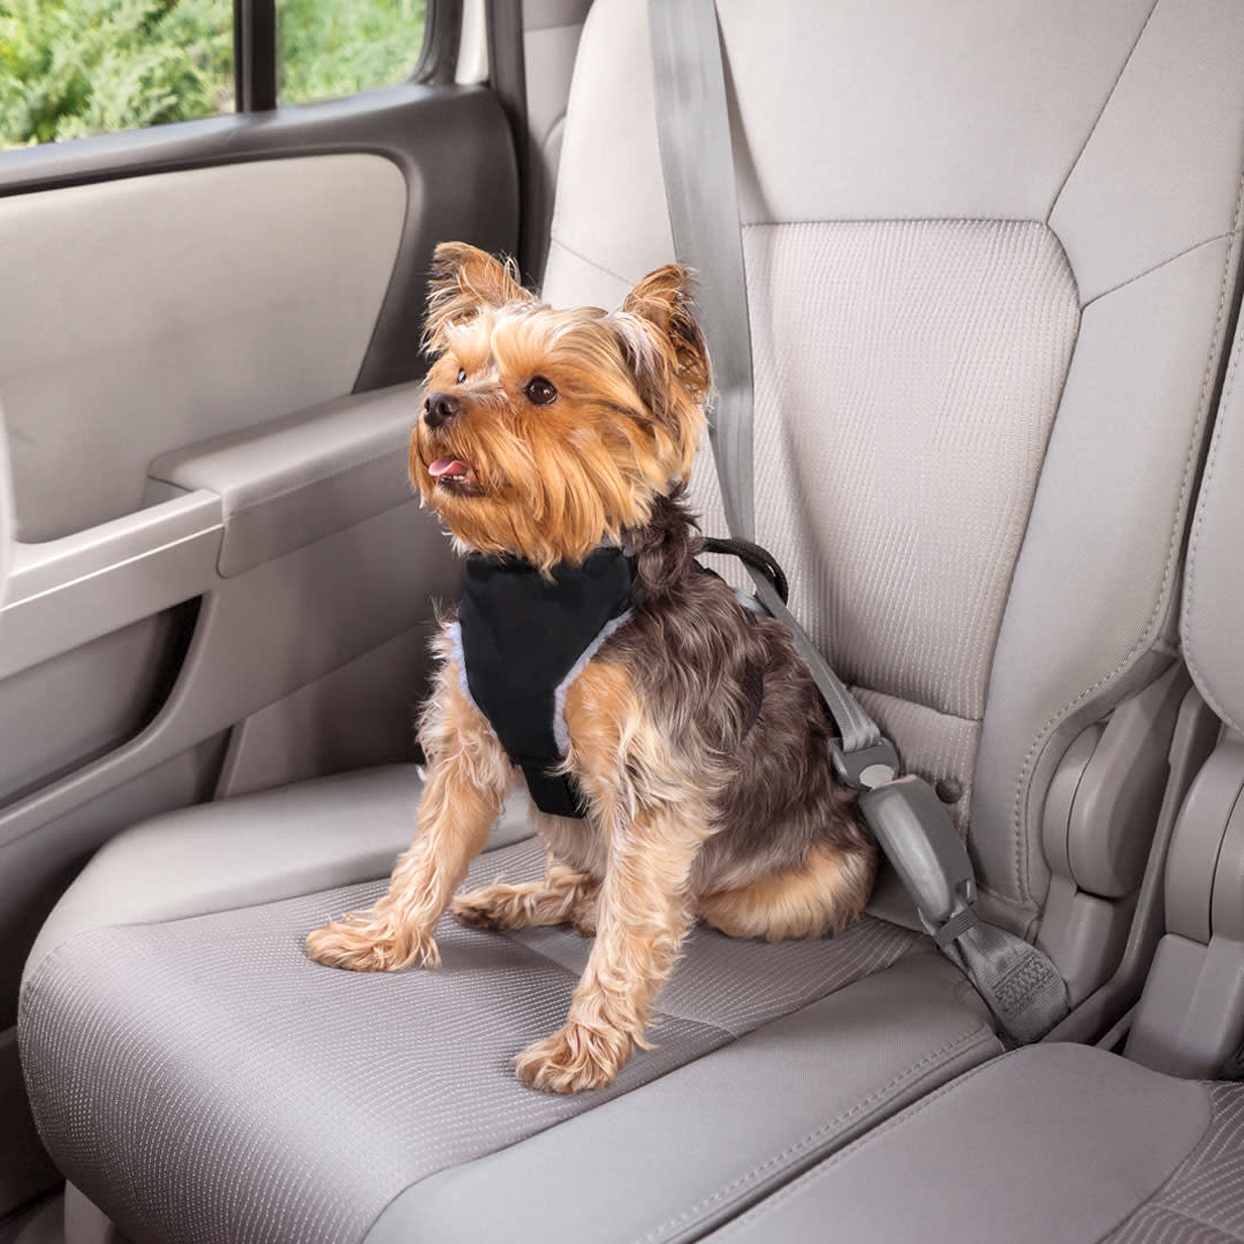 premiere-pet-car-safety-harness-for-small-dogs